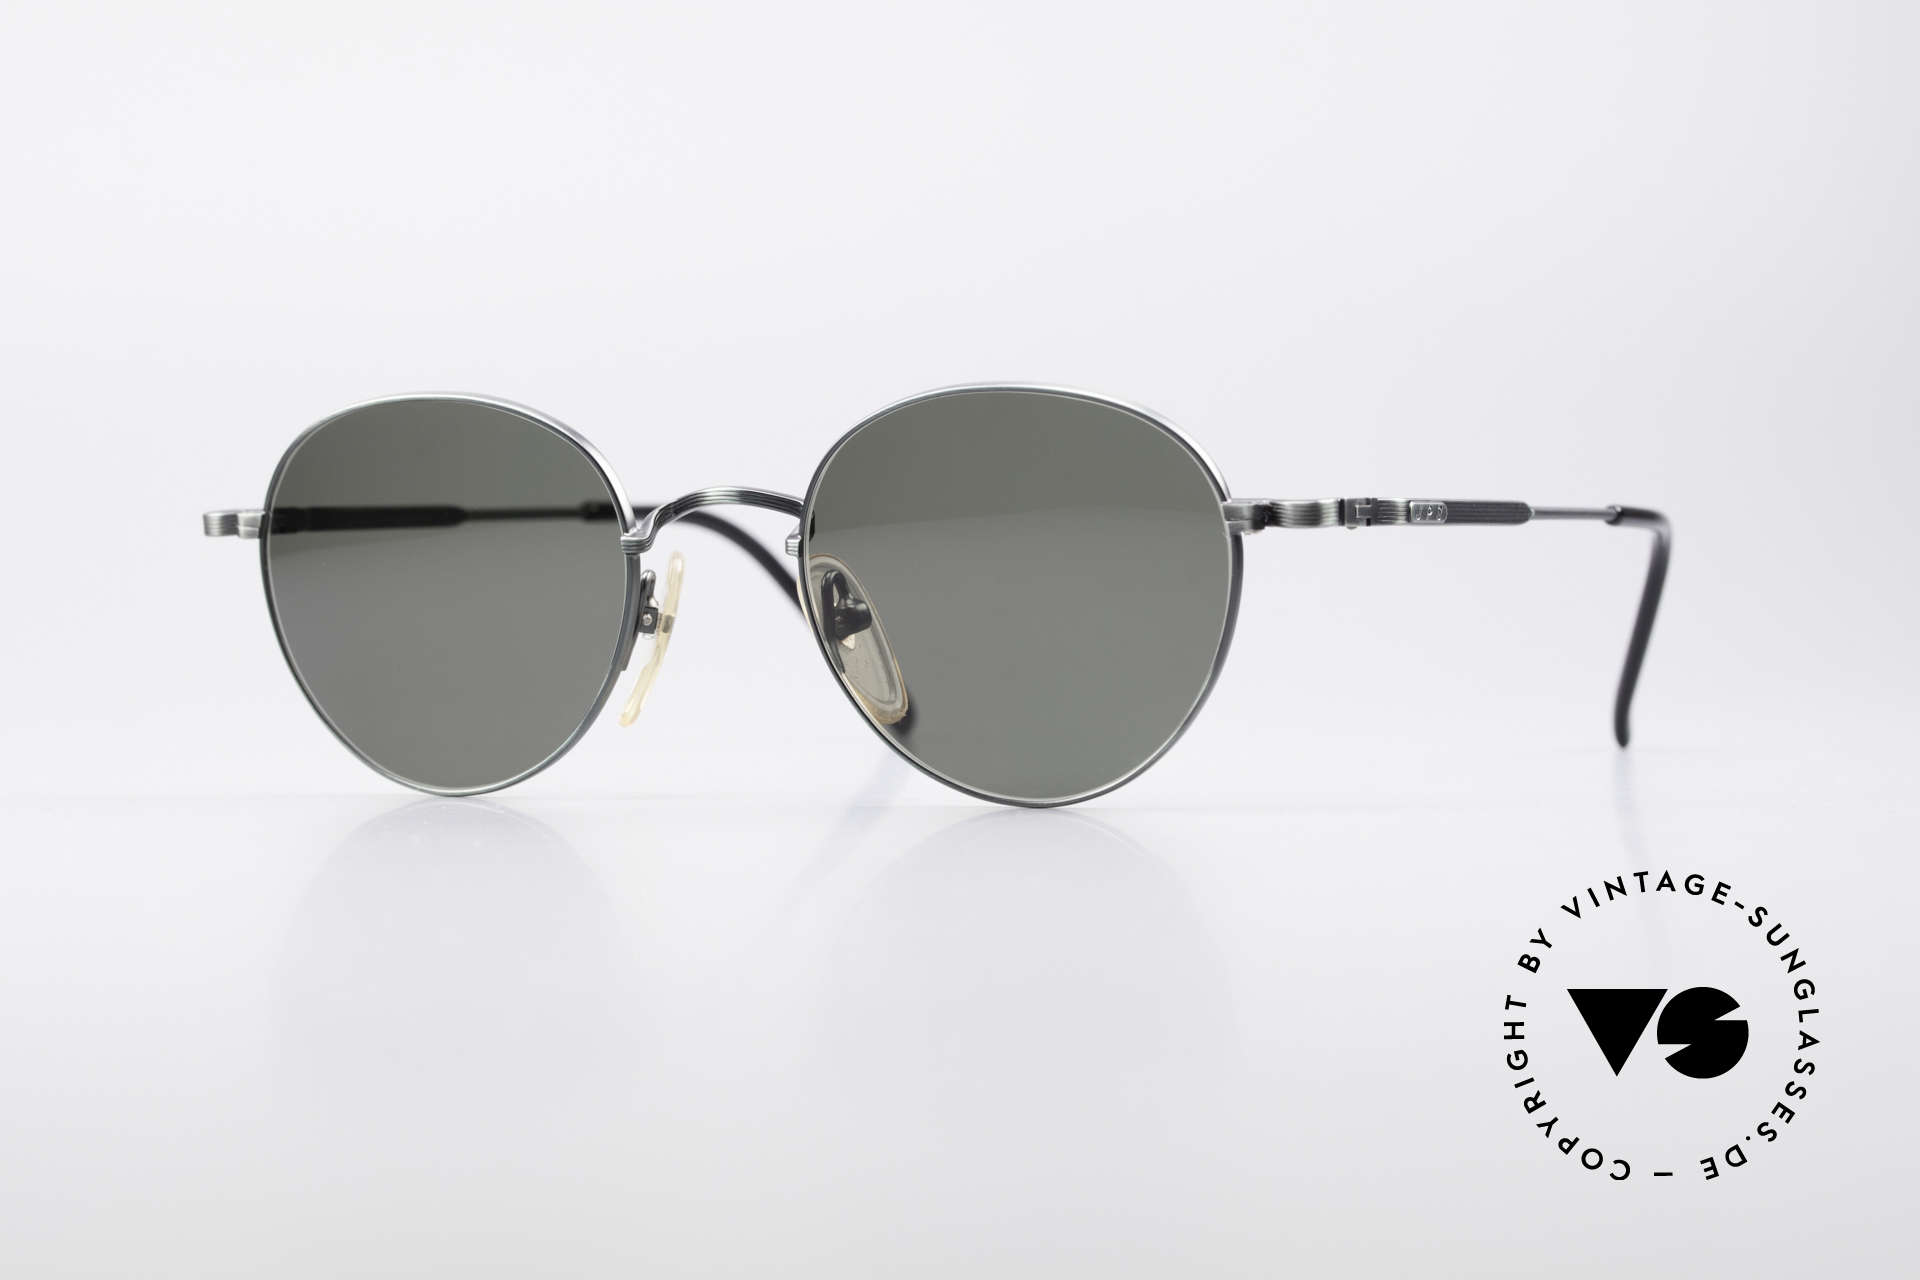 Jean Paul Gaultier 55-1174 Round Vintage Sunglasses, round vintage designer sunglasses by J.P. GAULTIER, Made for Men and Women